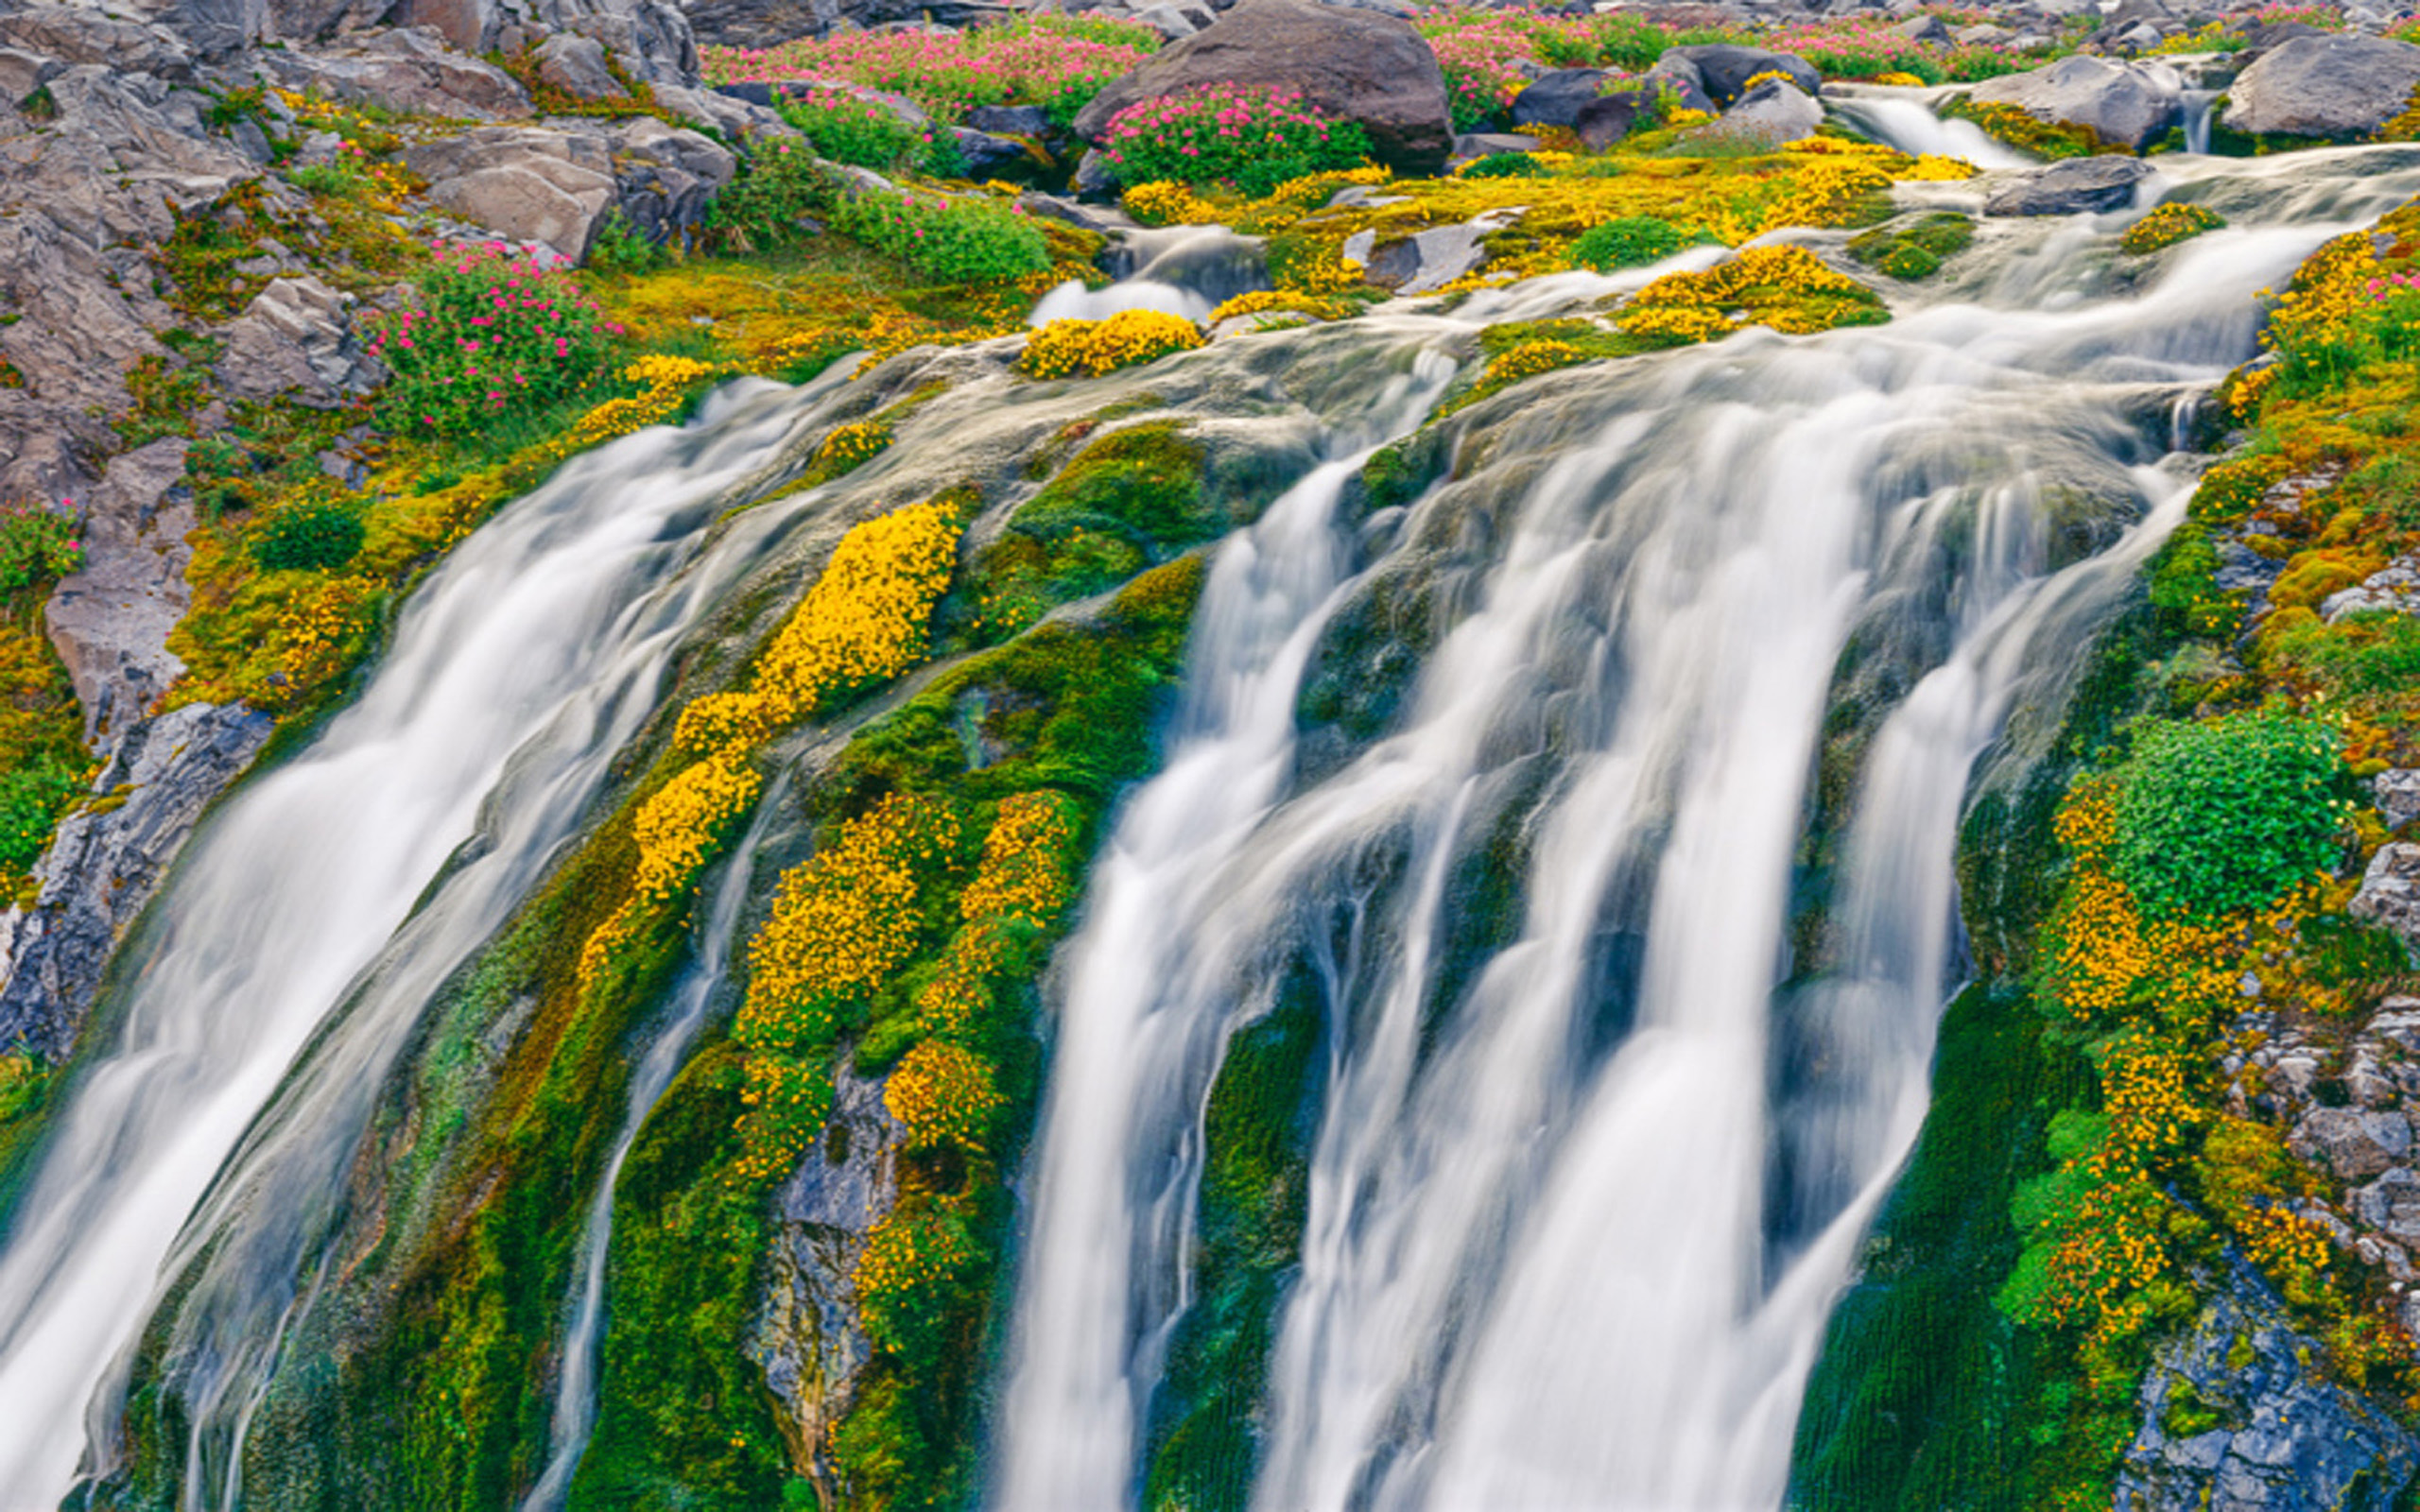 Fall Flowers Desk Background Wallpaper Waterfall In Spring Yellow And Pink Flowers In Mount